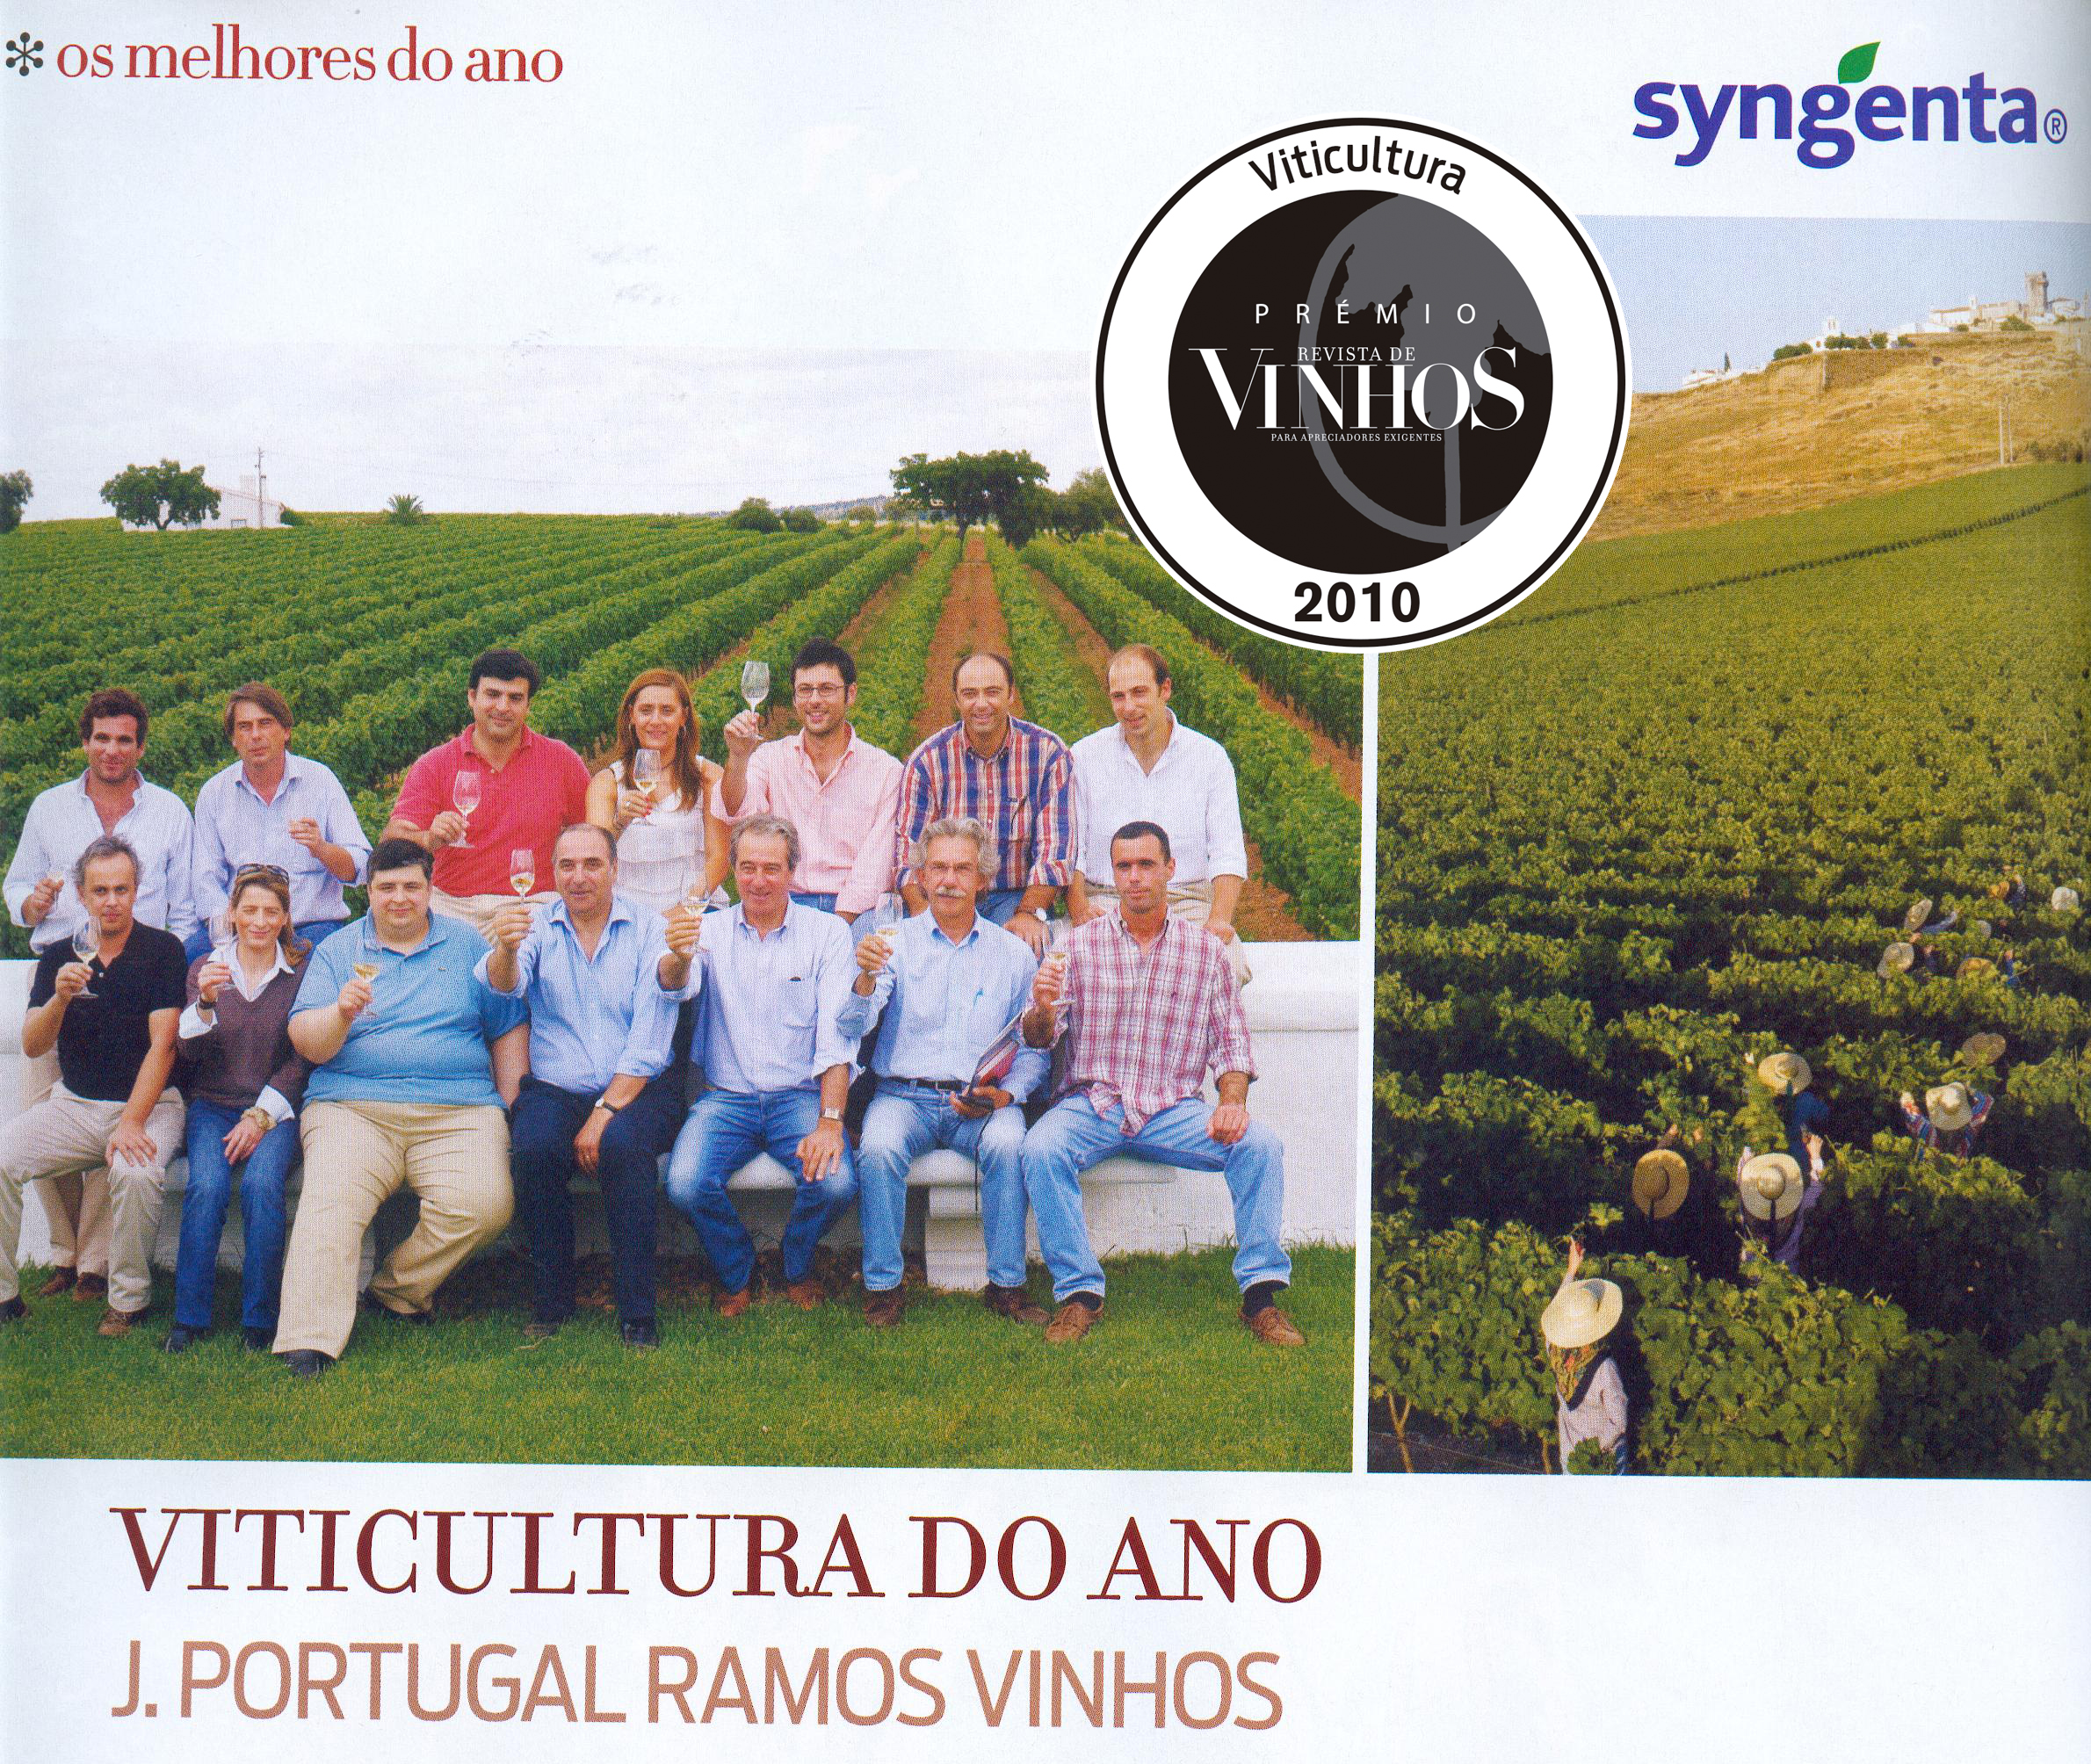 2010 - Viticulture Enterprise of the Year 1